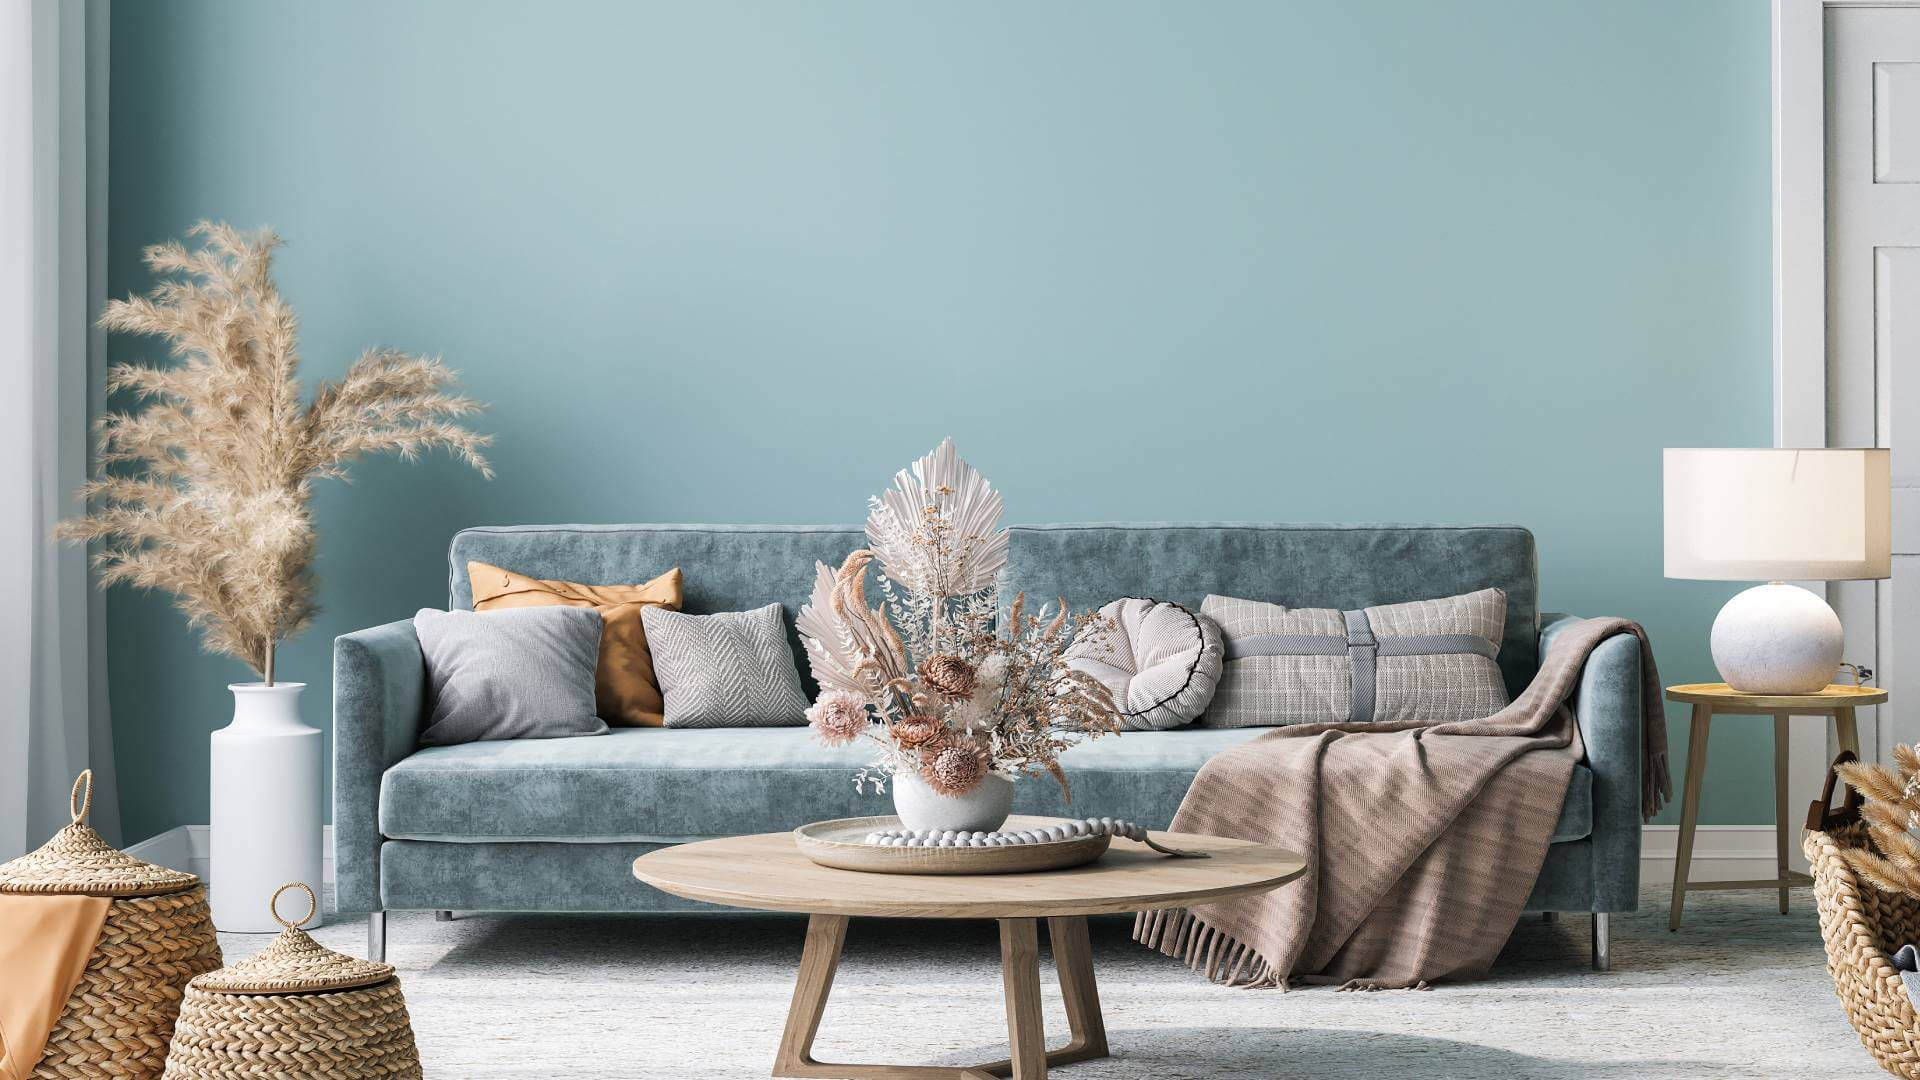 Home Decor Trends in 2021